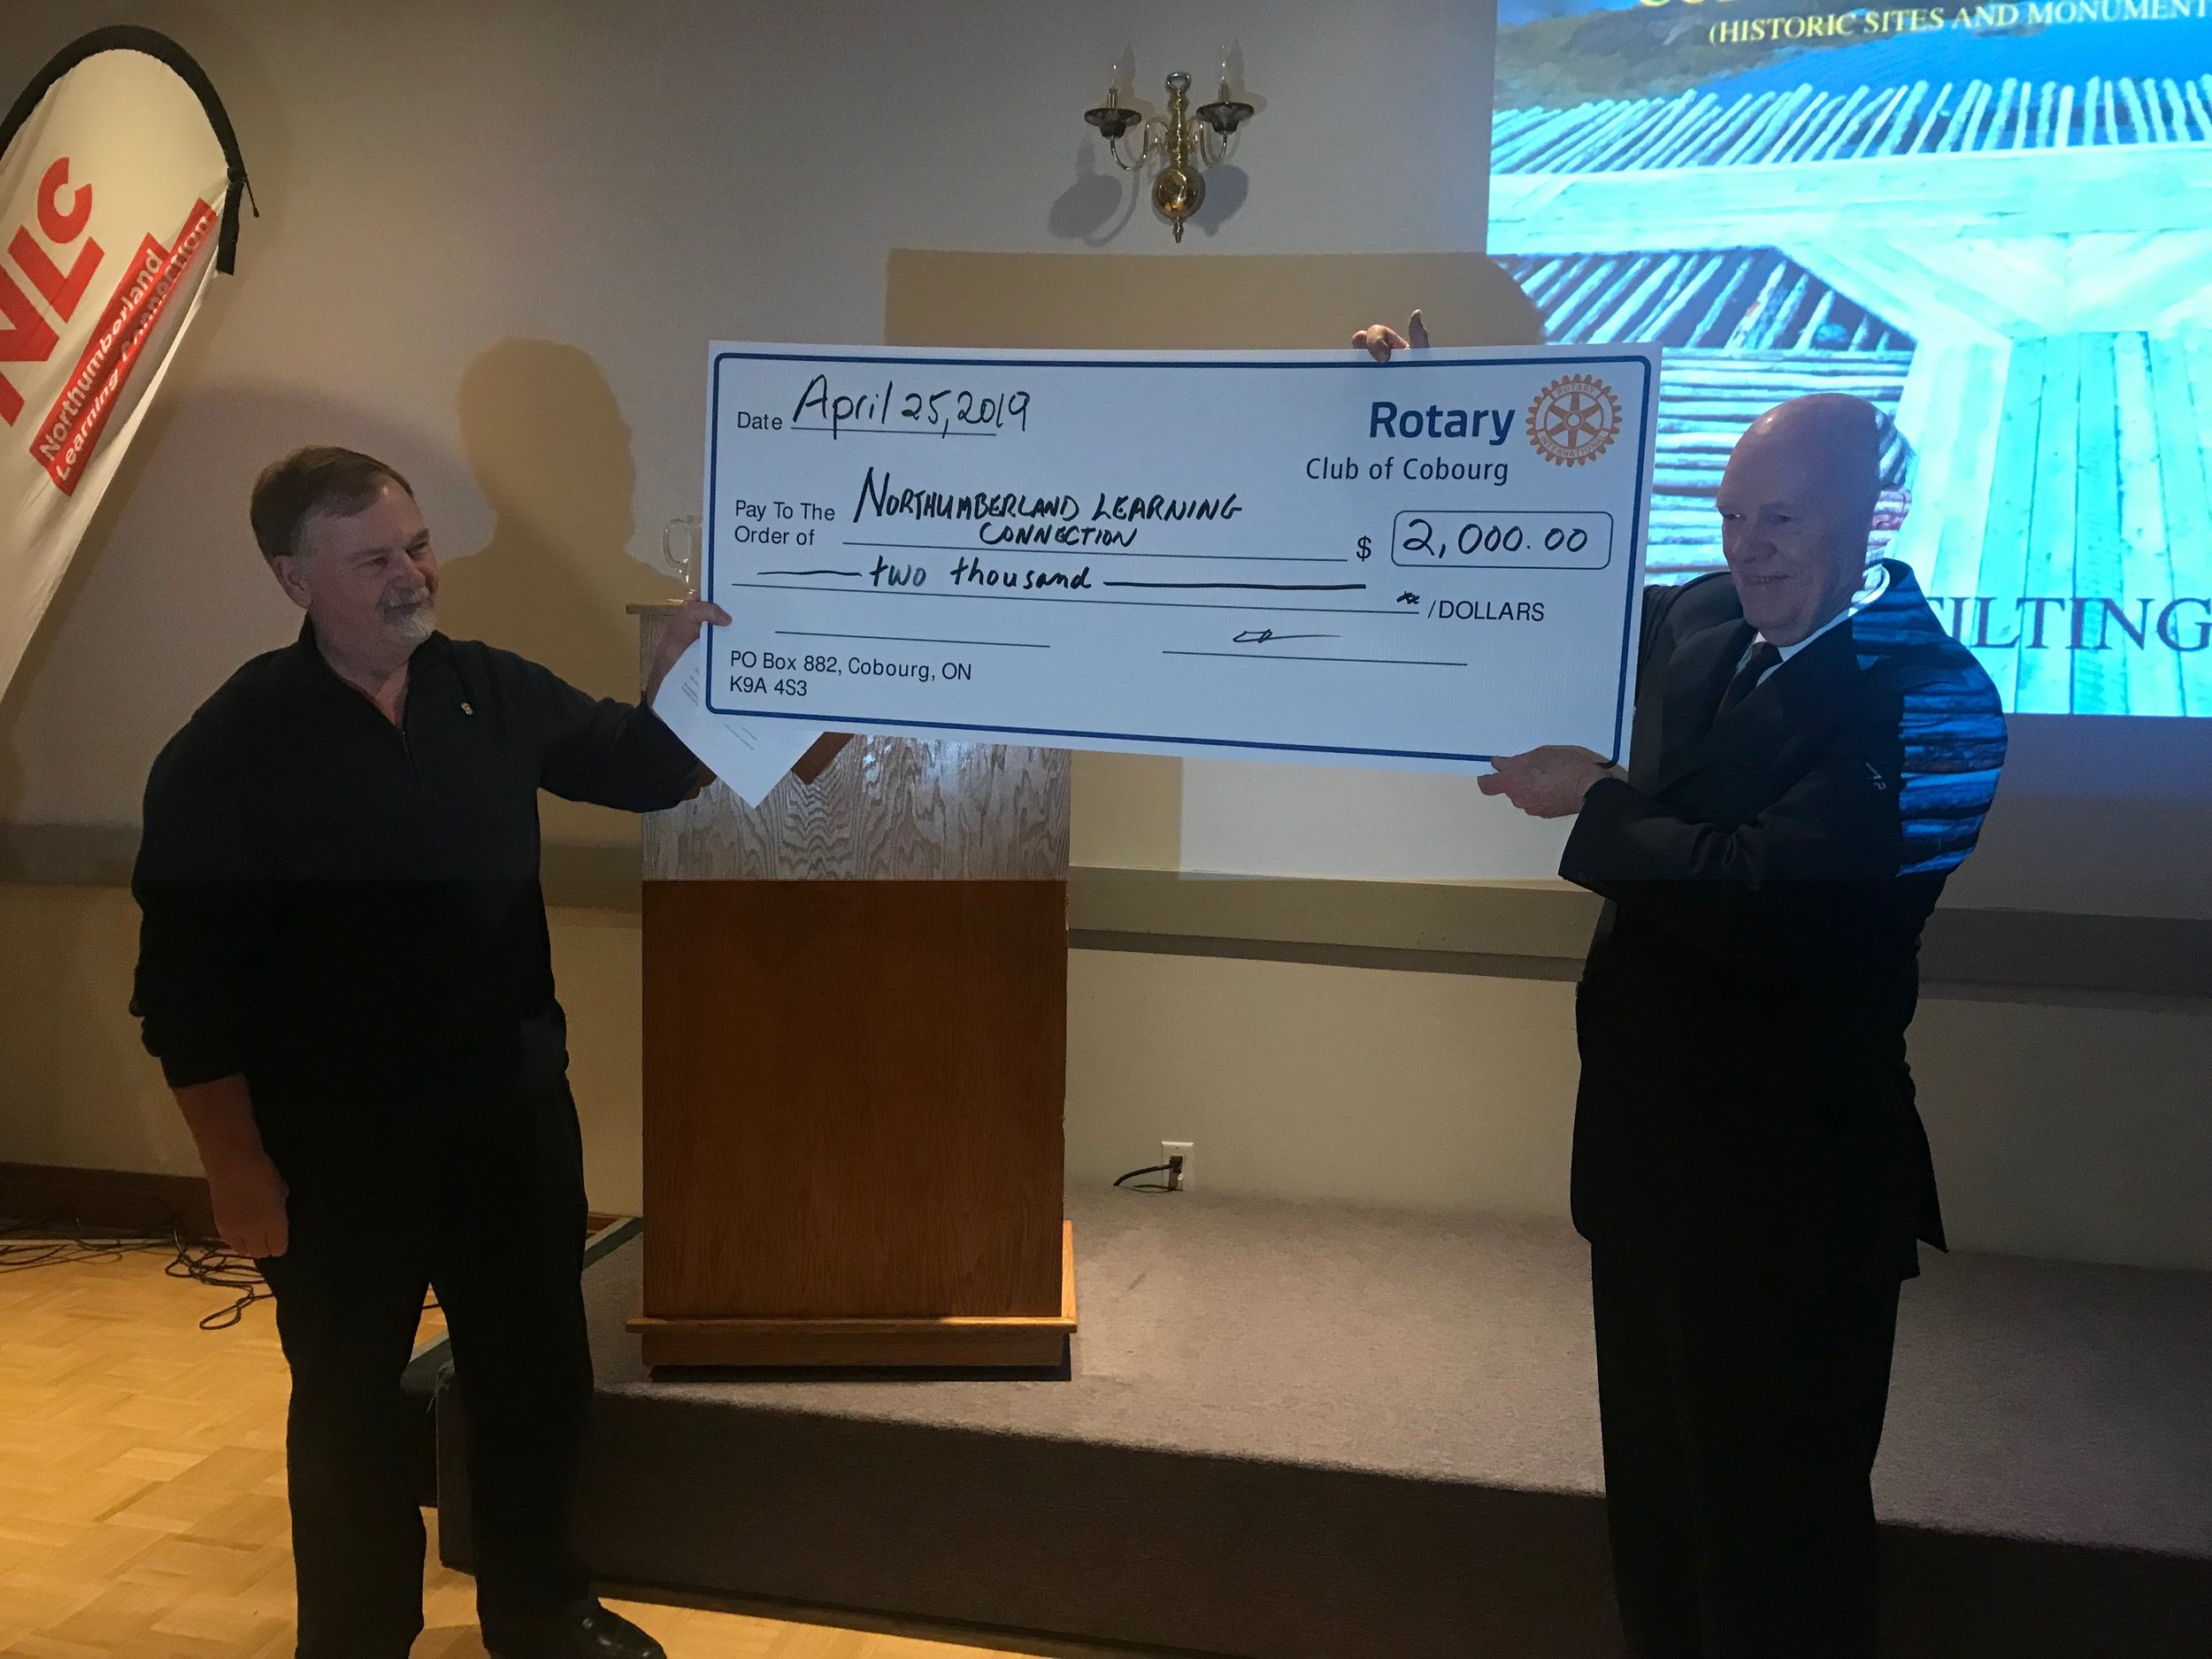 Rotary Club of Cobourg's Rick Riley presents a cheque to NLC Chair Wayne Lang